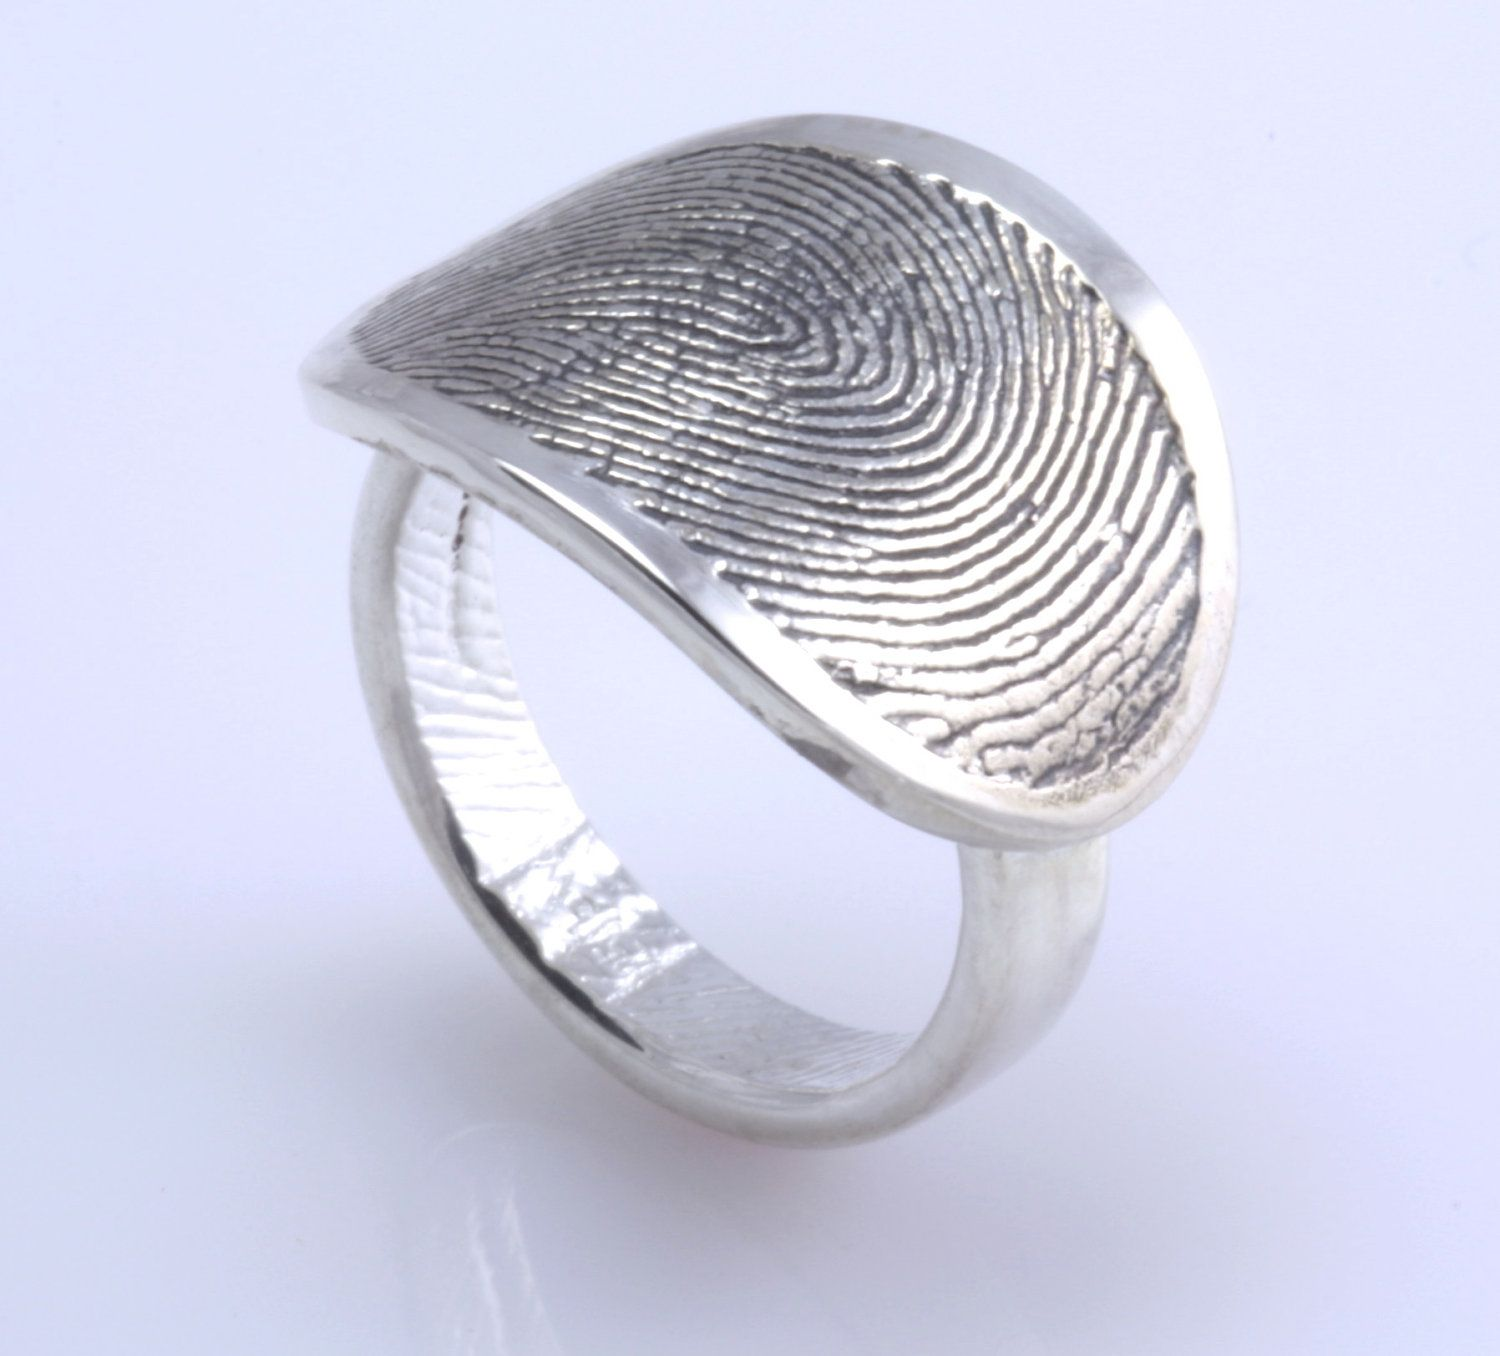 south gallery attachment brentjess of elegant for fingerprint ruffled full view wedding rings interesting africa